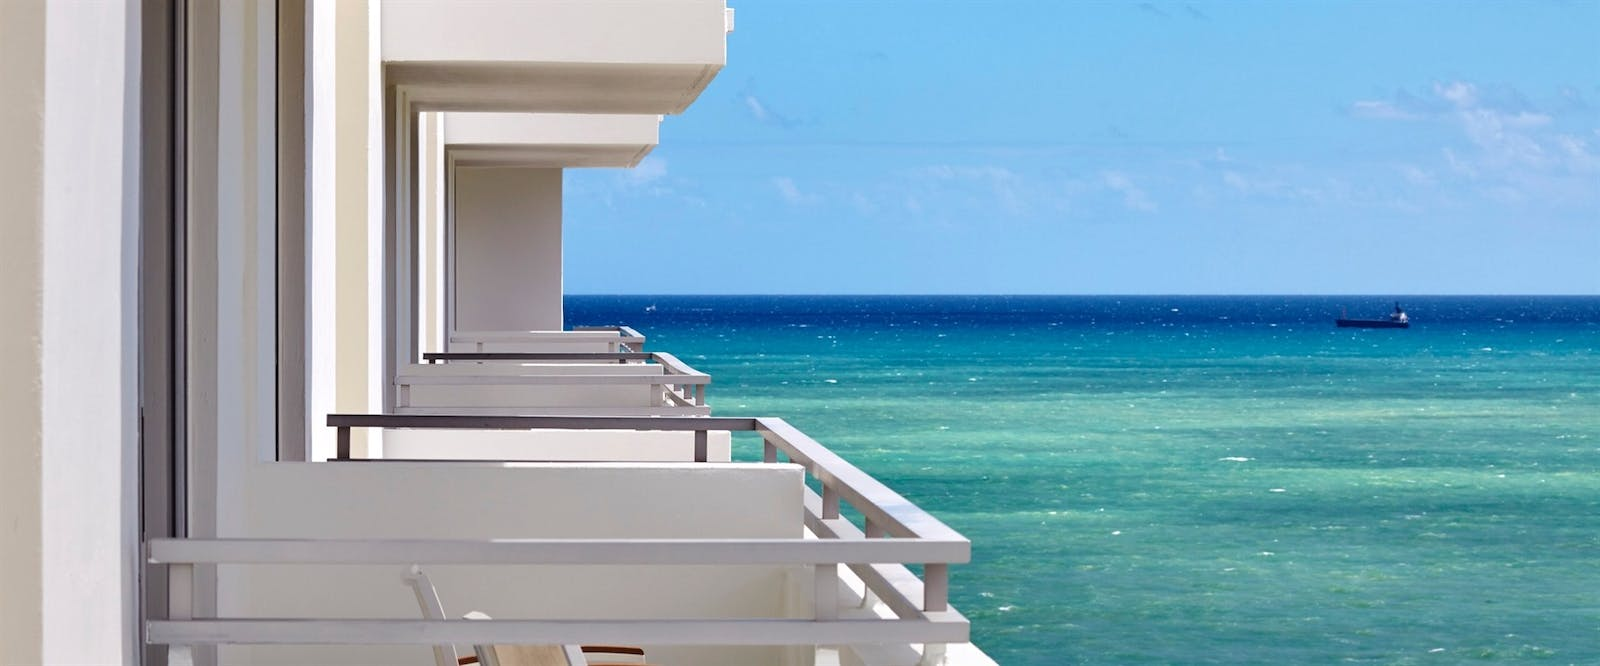 views from ocean view balcony rooms at loews miami beach